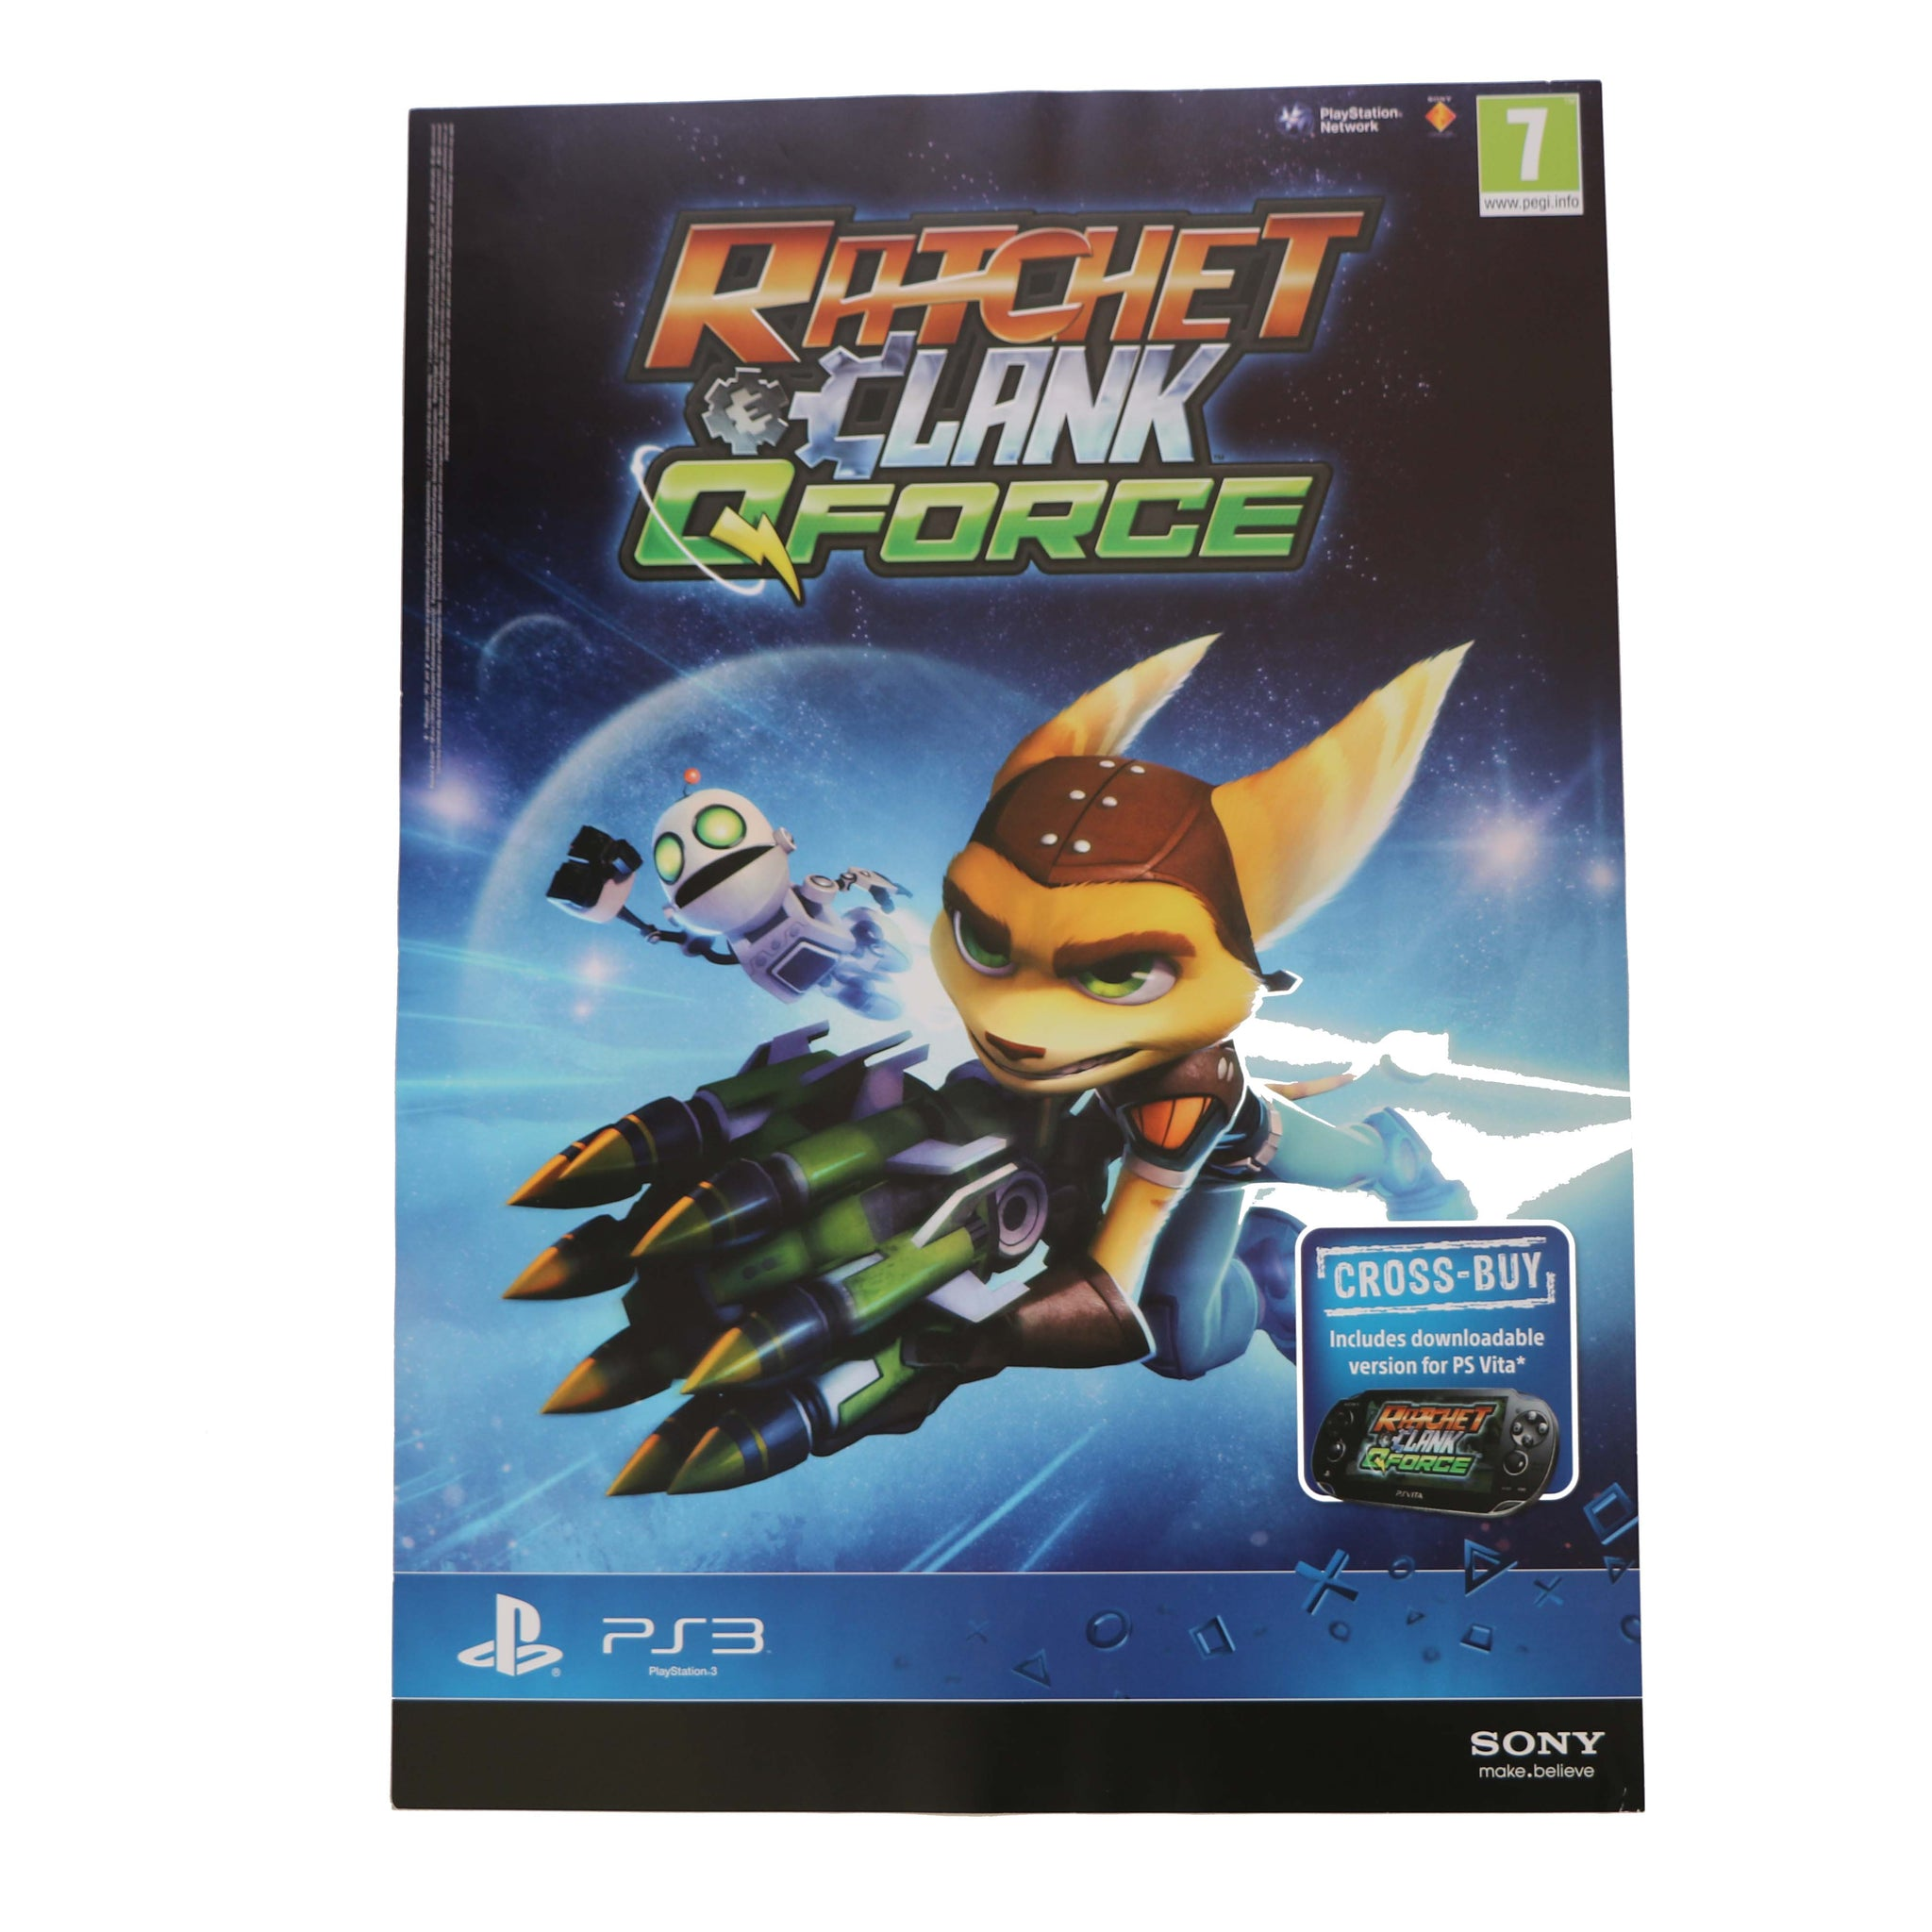 Ratchet & Clank - QFORCE - Sony PS3 Game Promo - Double Sided - A2 Poster